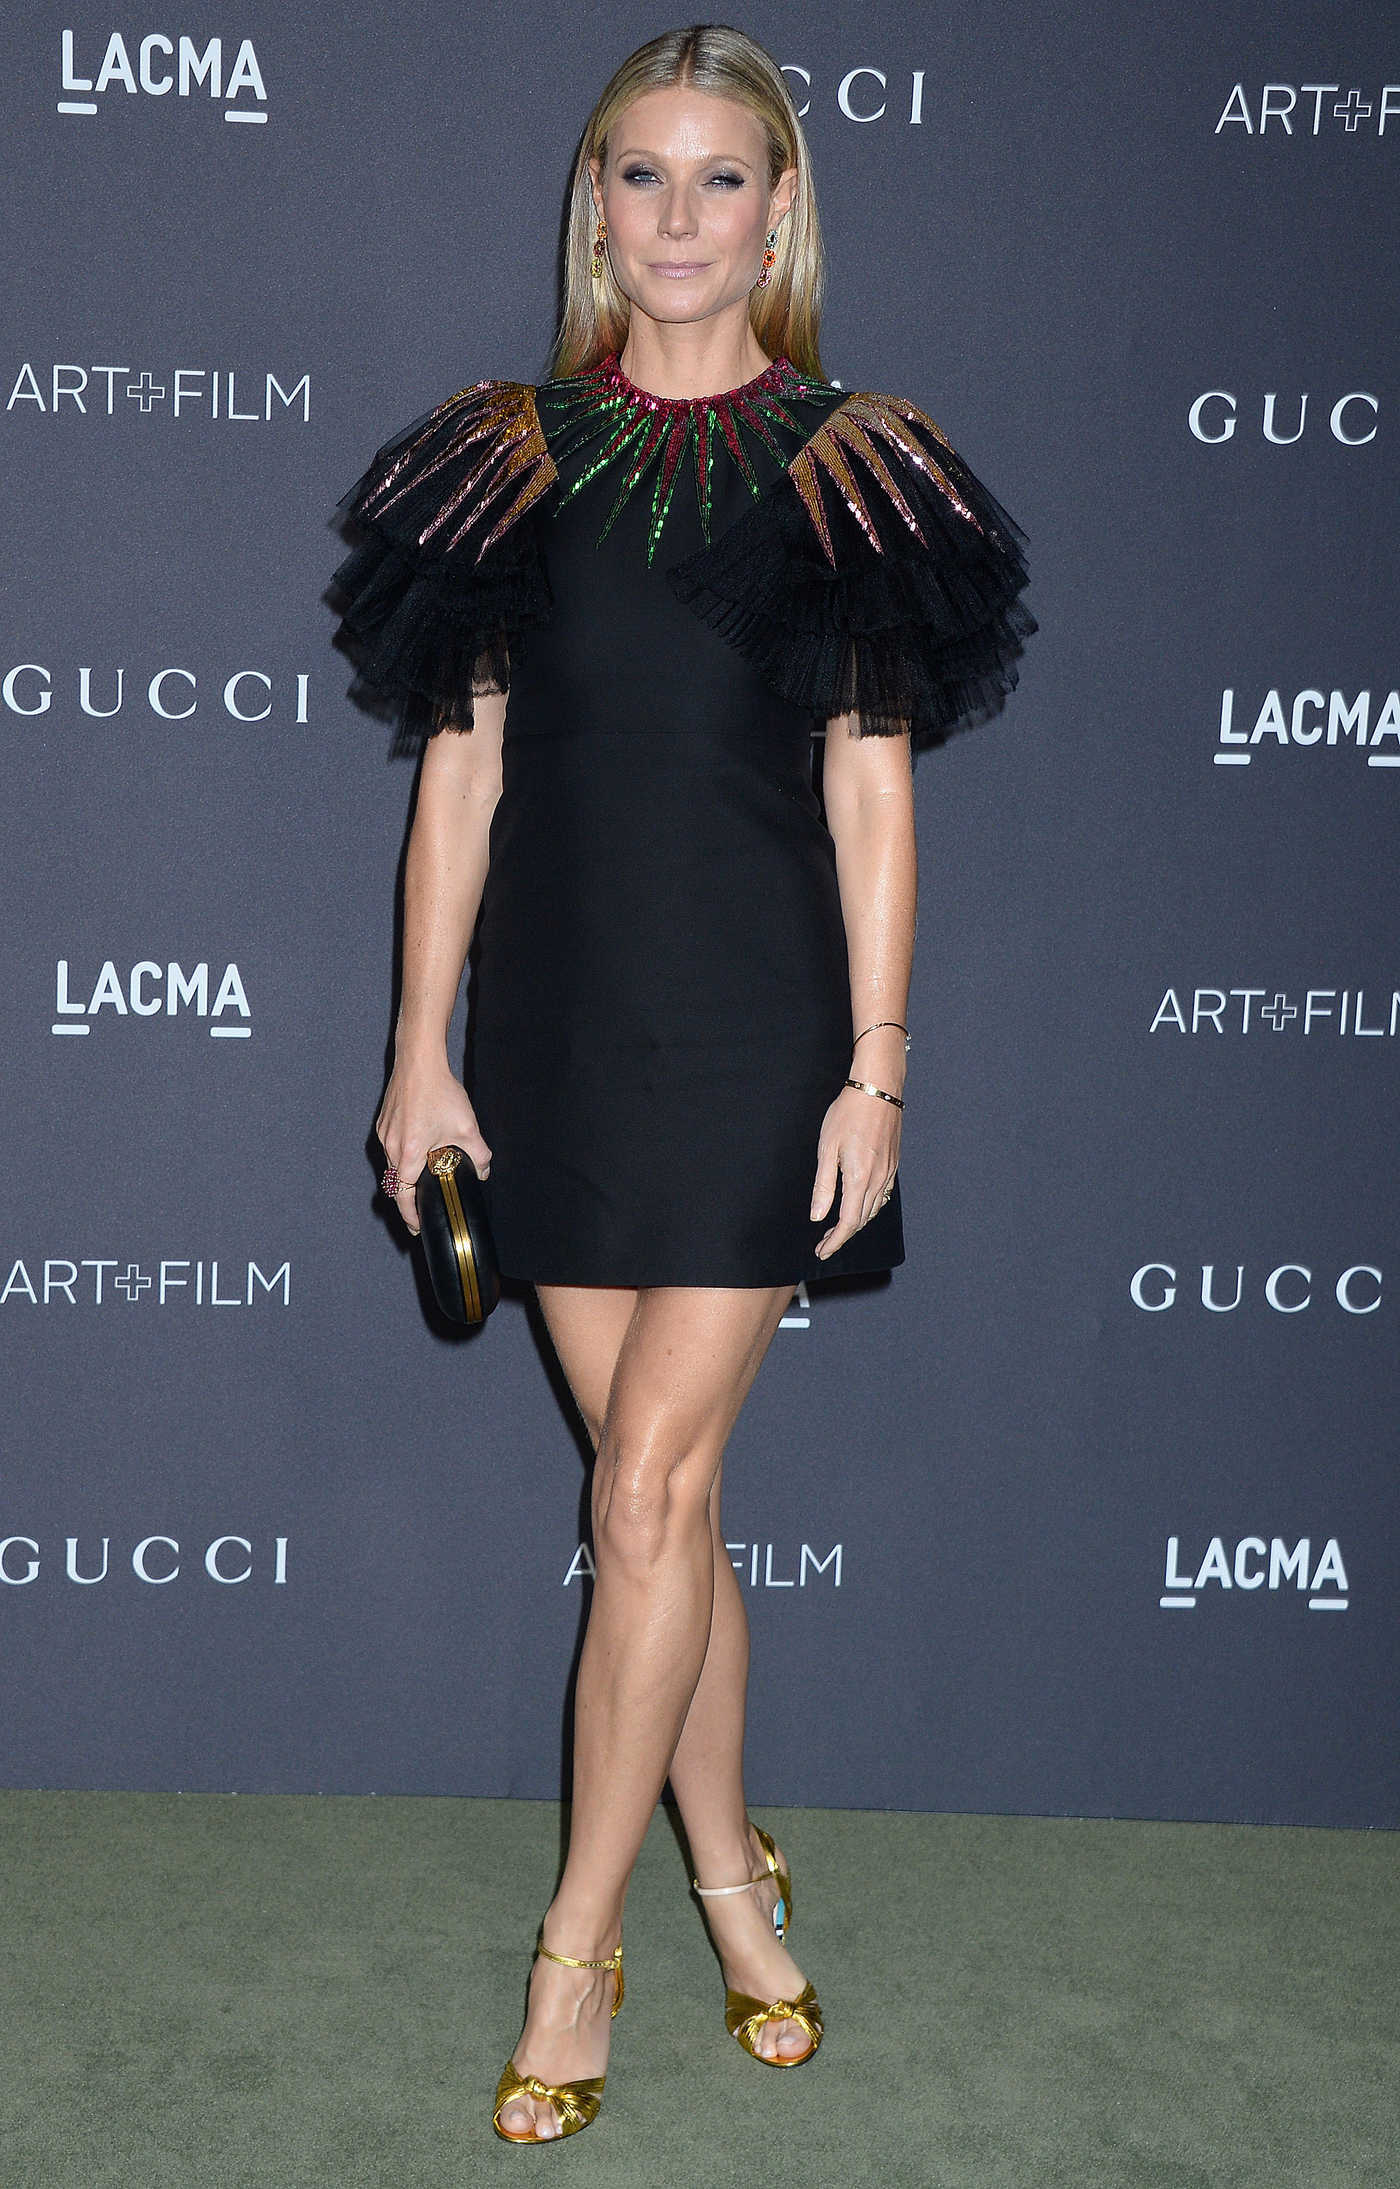 Gwyneth Paltrow at the LACMA Art and Film Gala in Los Angeles 10/29/2016